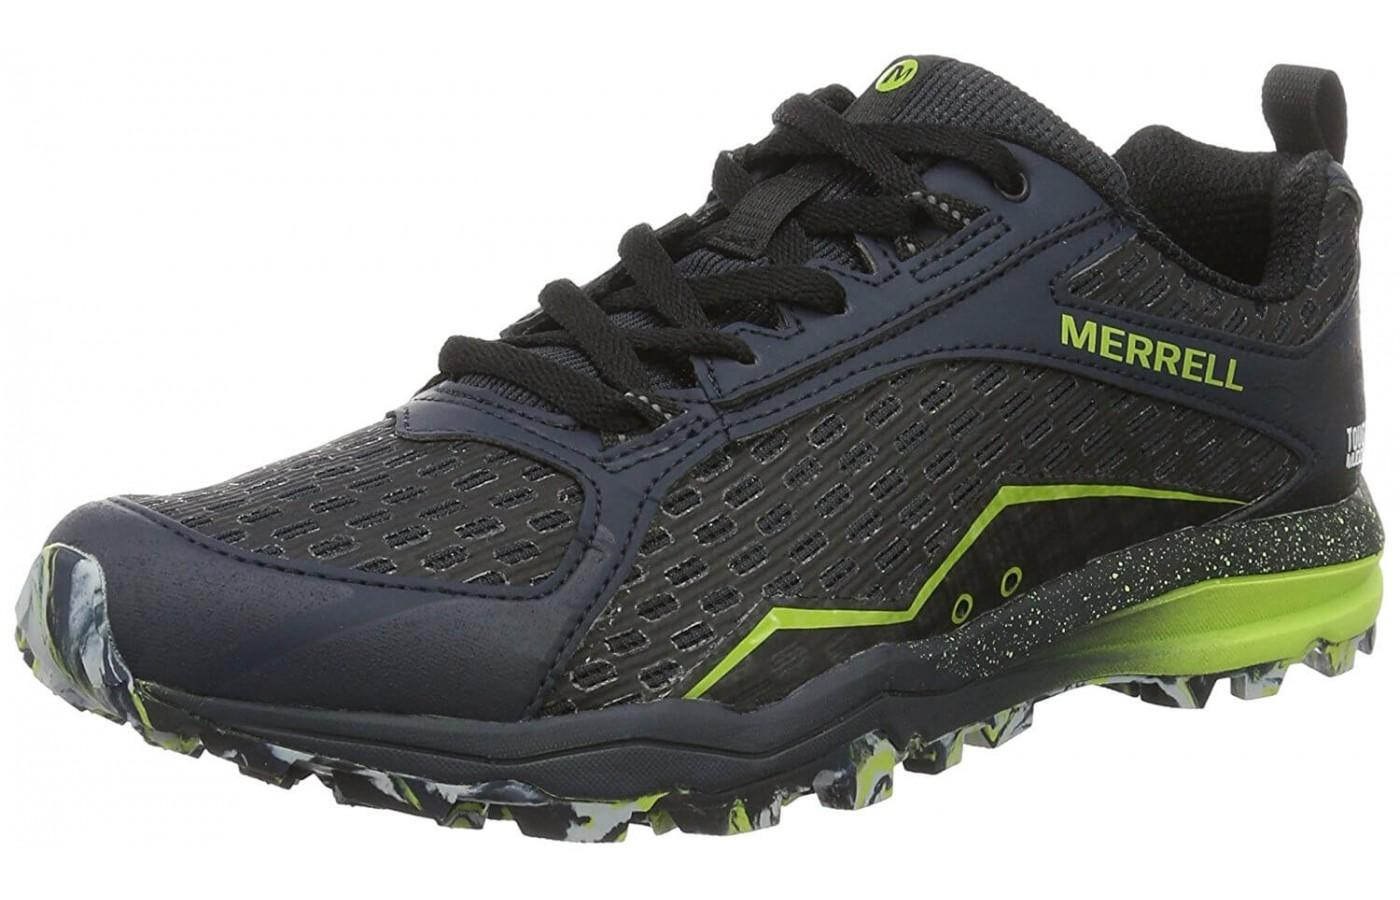 Merrell All Out Crush Tough Mudder has a bold look